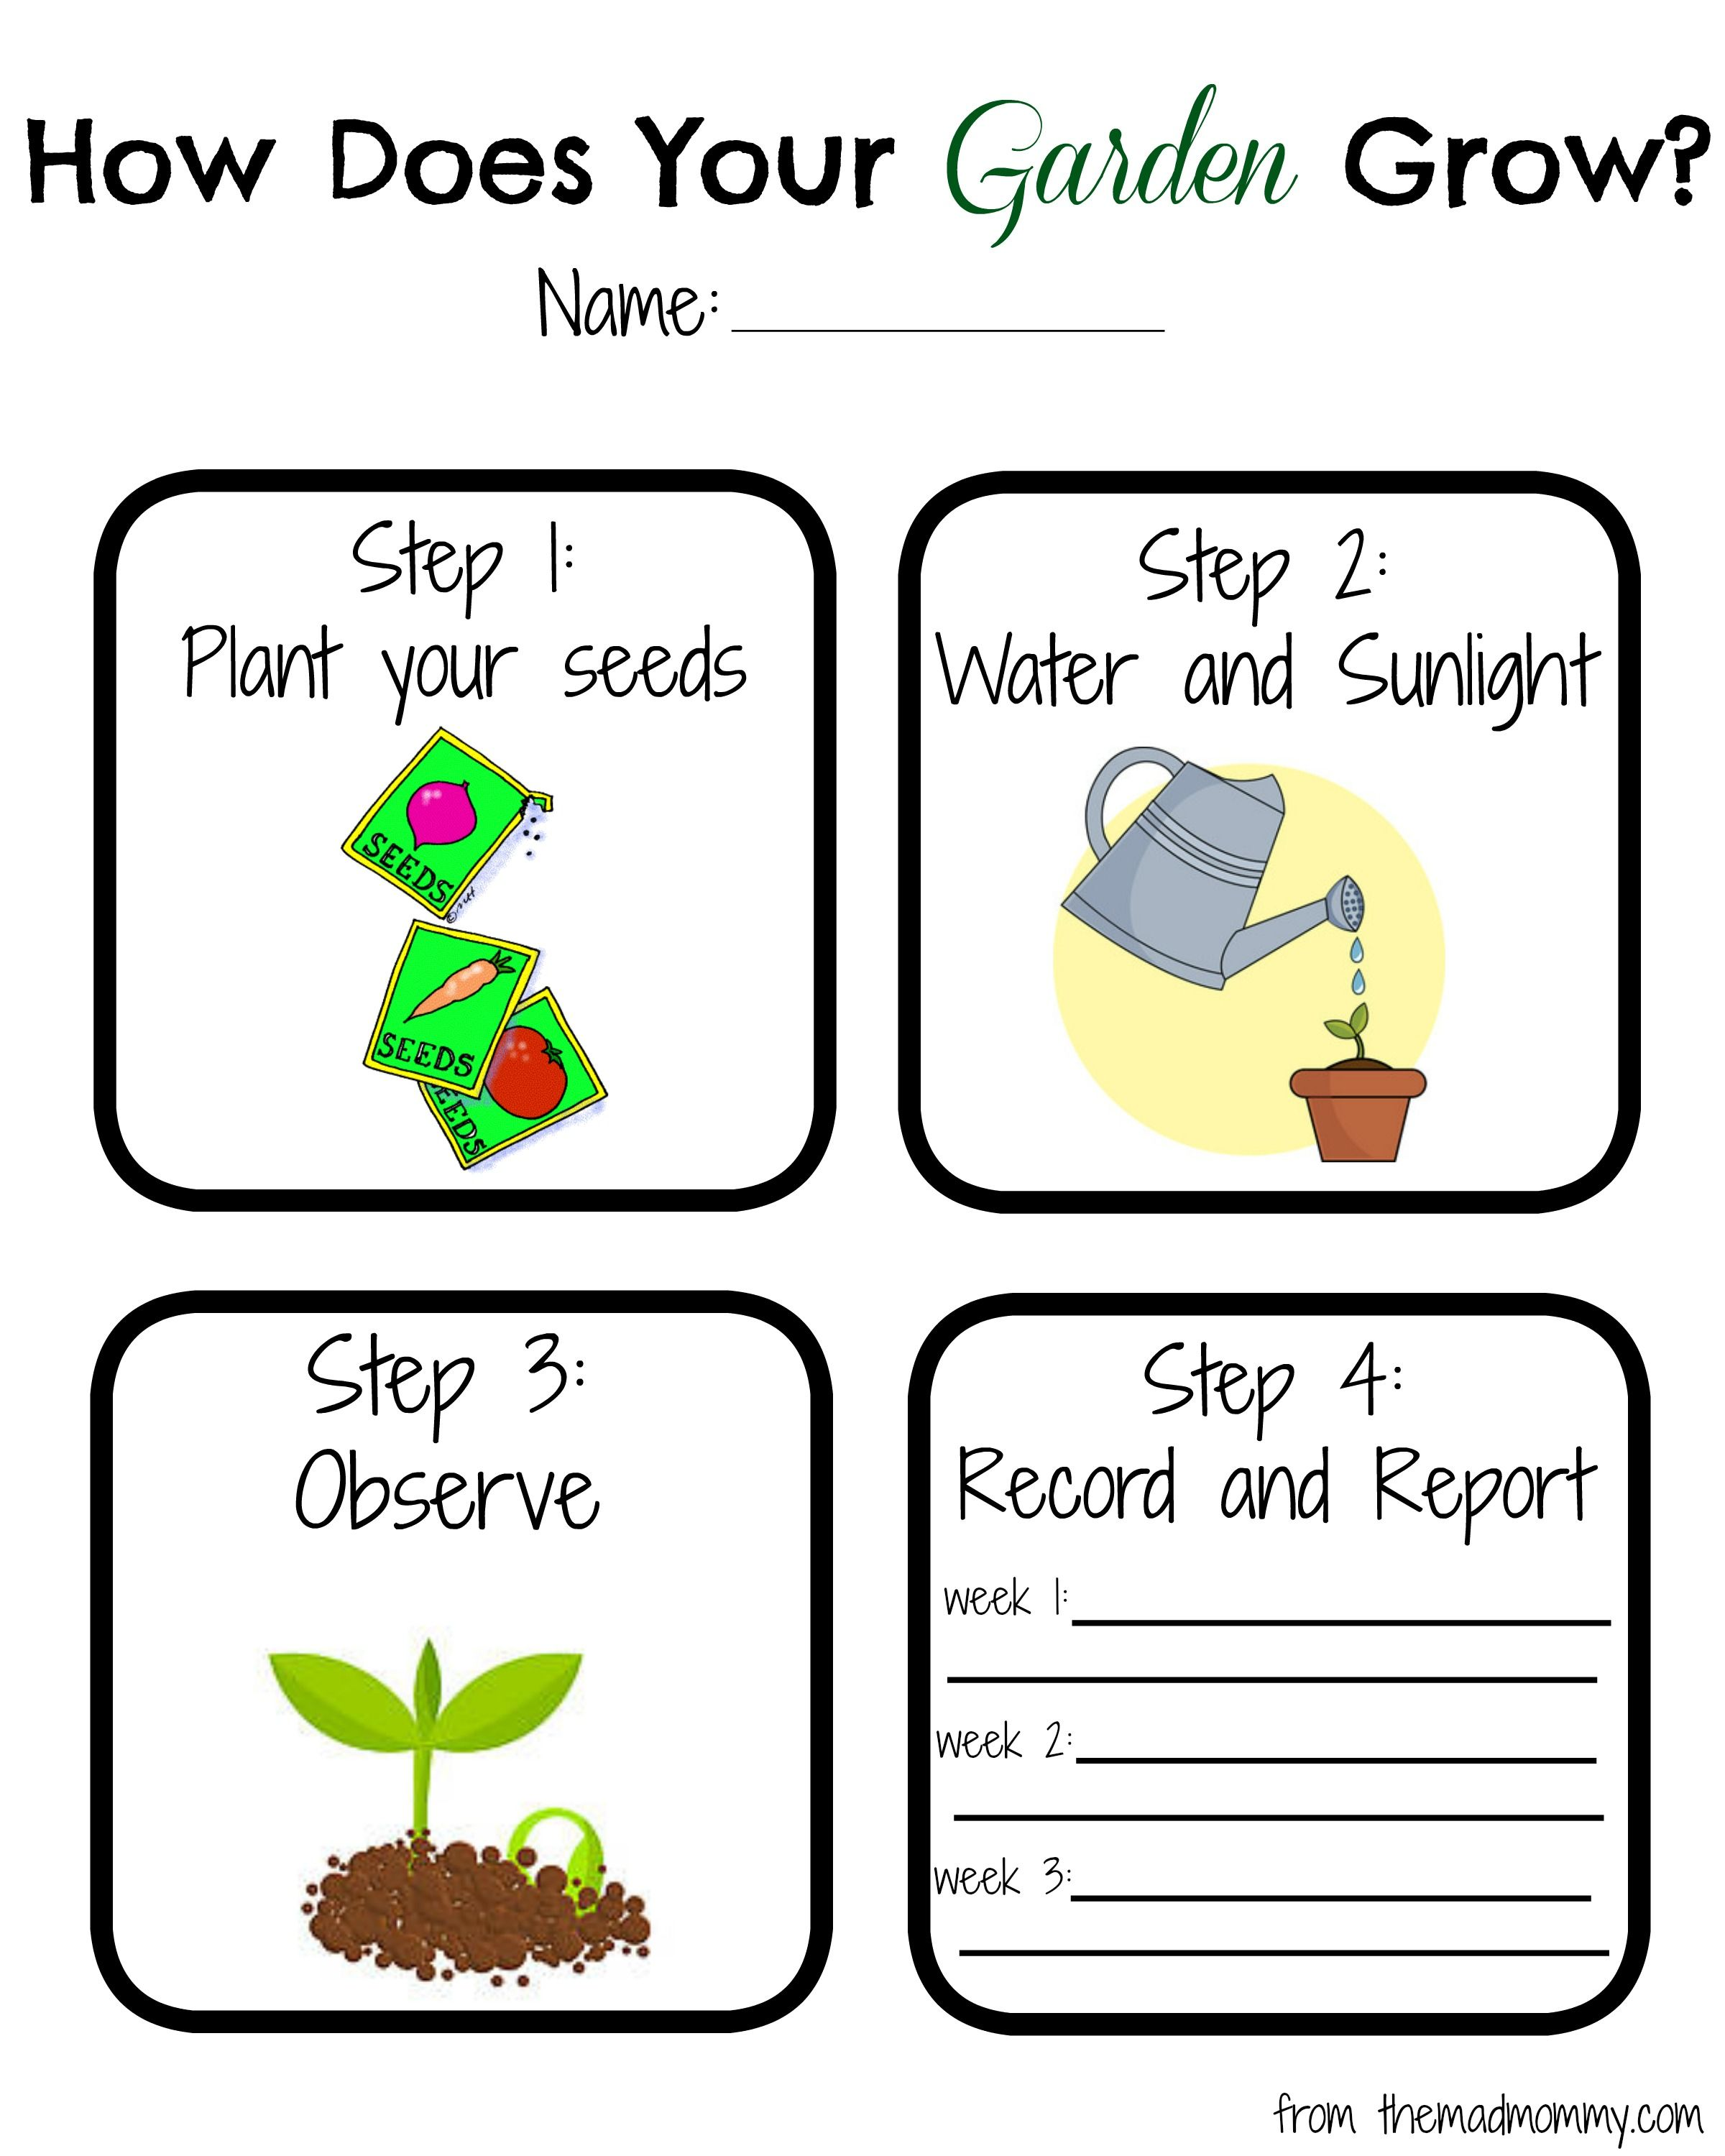 Worksheets Horticulture Worksheets planting a k cup garden free printable worksheets to help your child